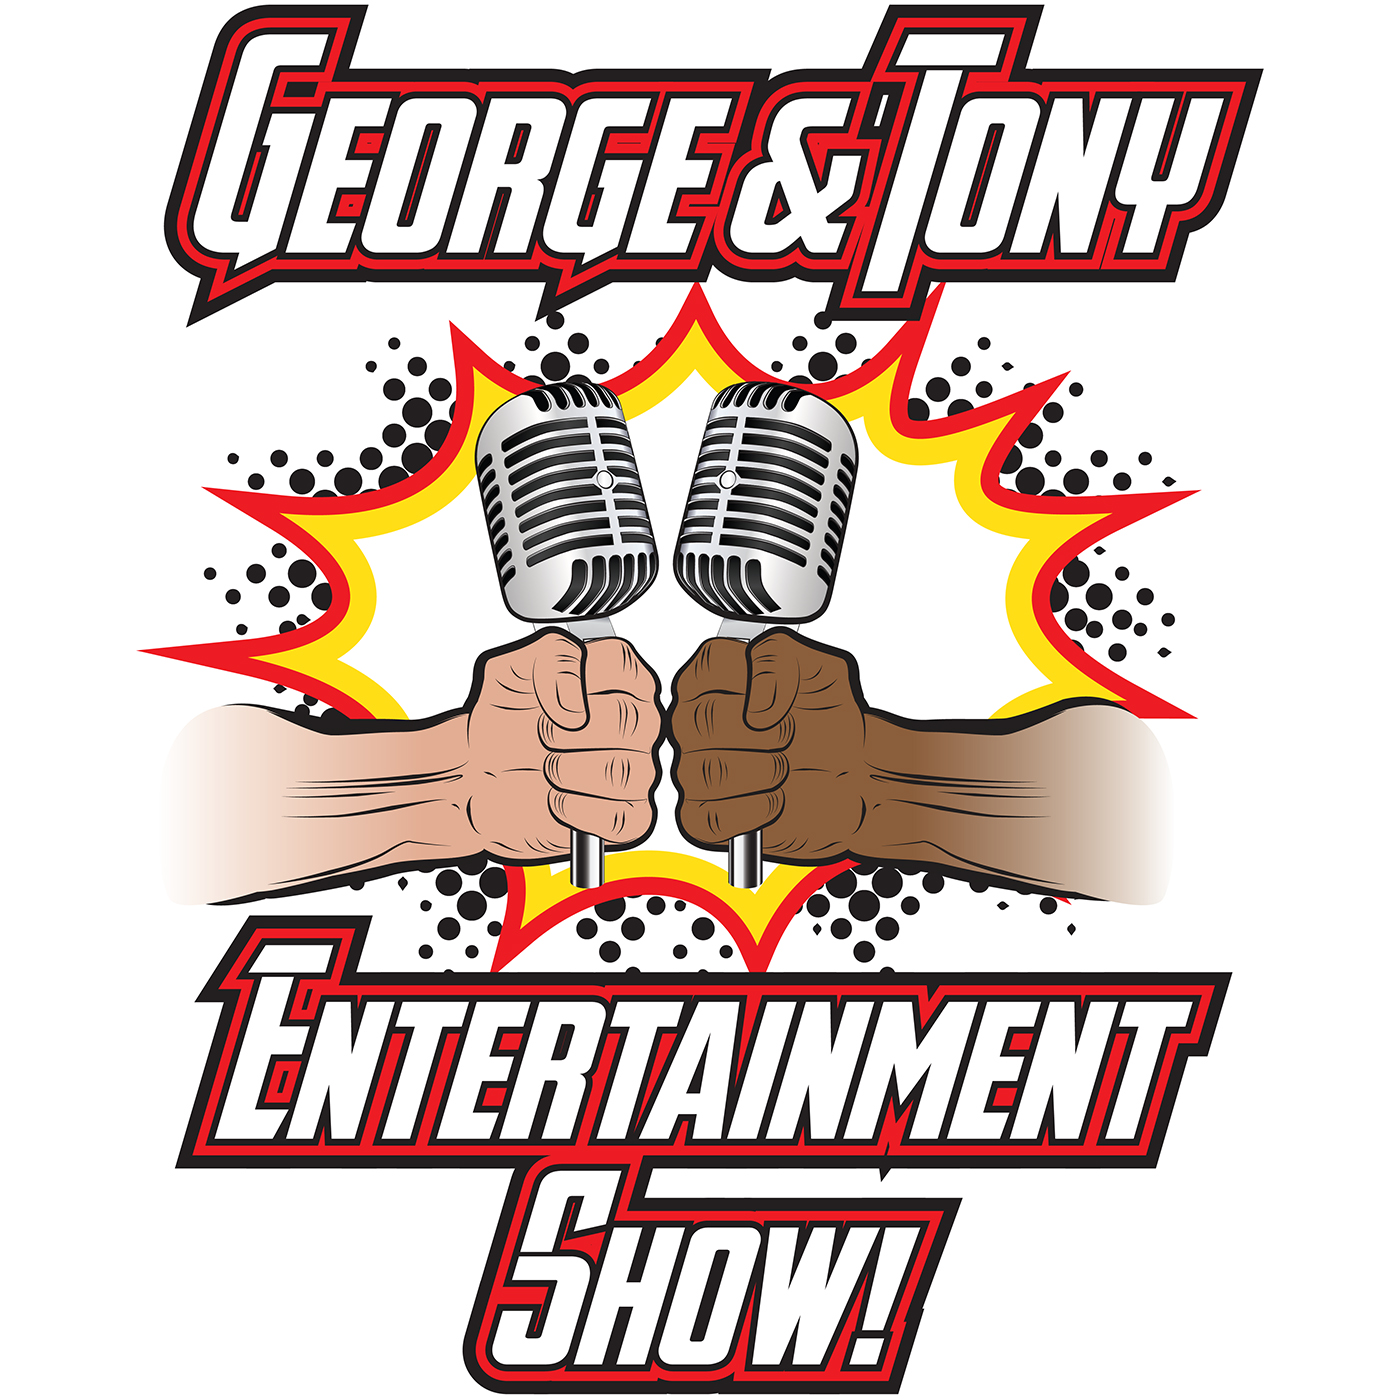 George and Tony Entertainment Show #74